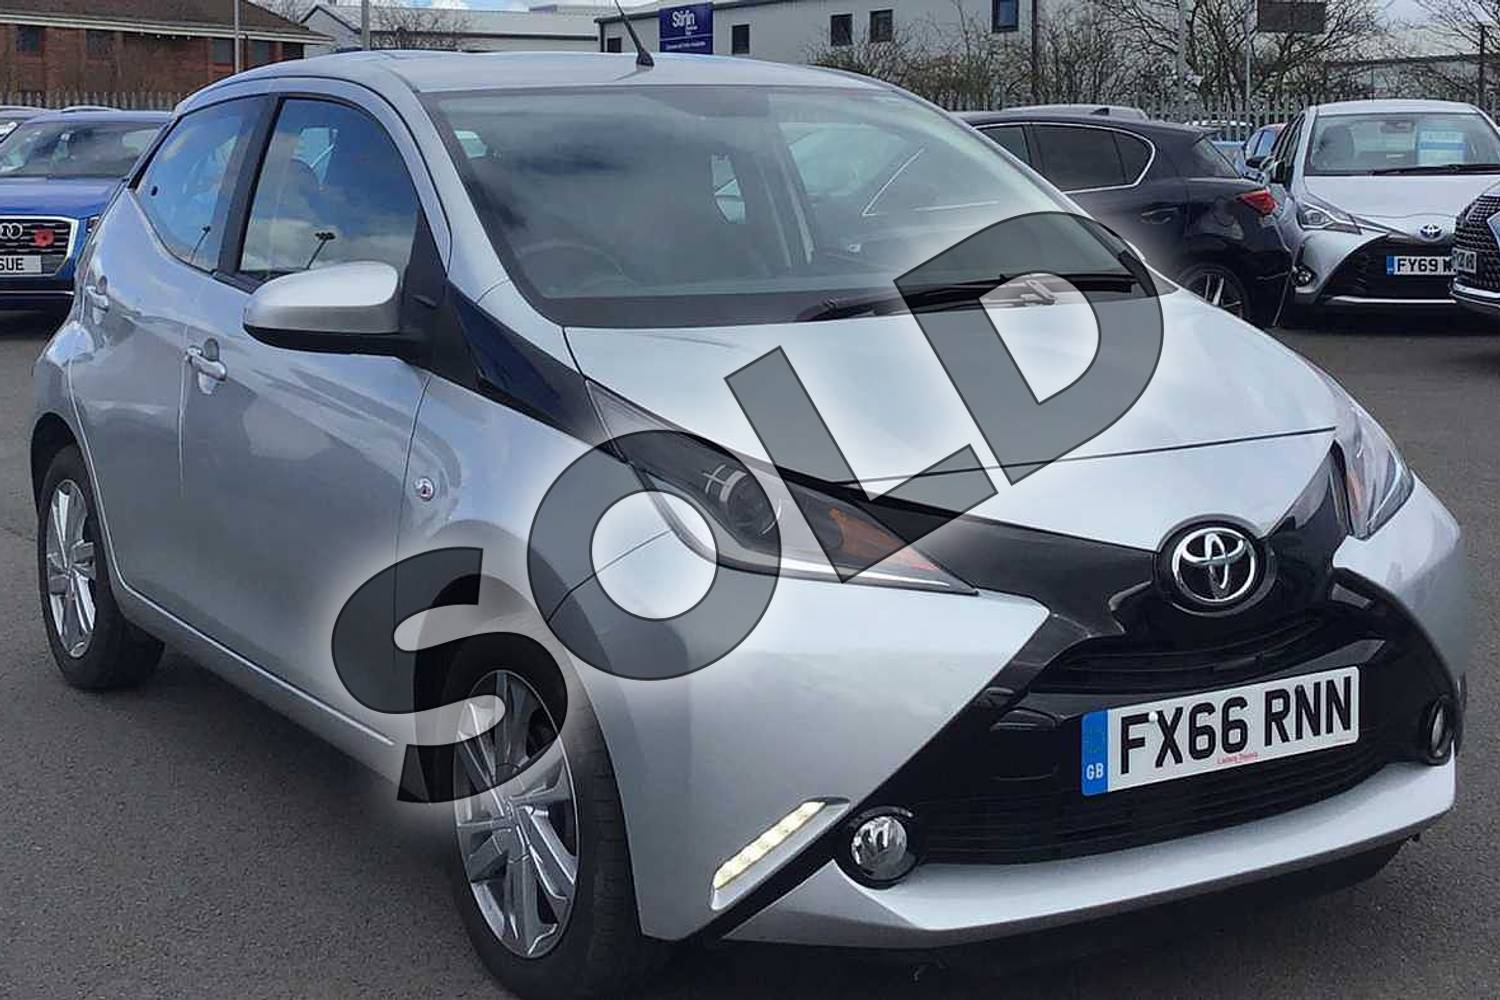 2016 Toyota AYGO Hatchback 1.0 VVT-i X-Pression 5dr x-shift in Silver at Listers Toyota Lincoln